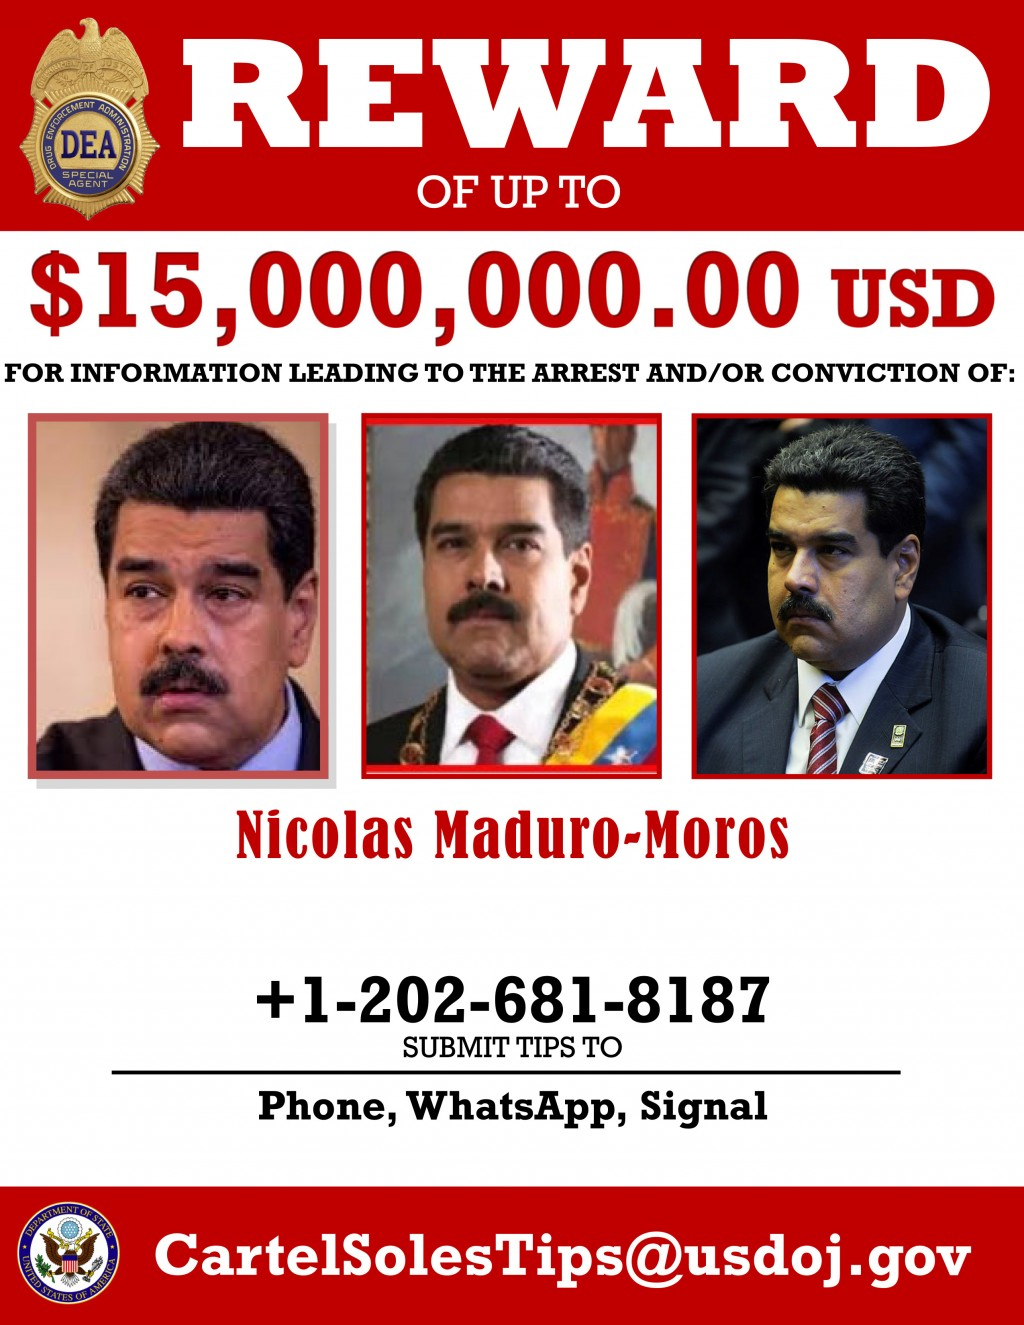 This image provided by the U.S. Department of Justice shows a reward poster for Nicolas Maduro that was released on Thursday, March 26, 2020. The U.S....